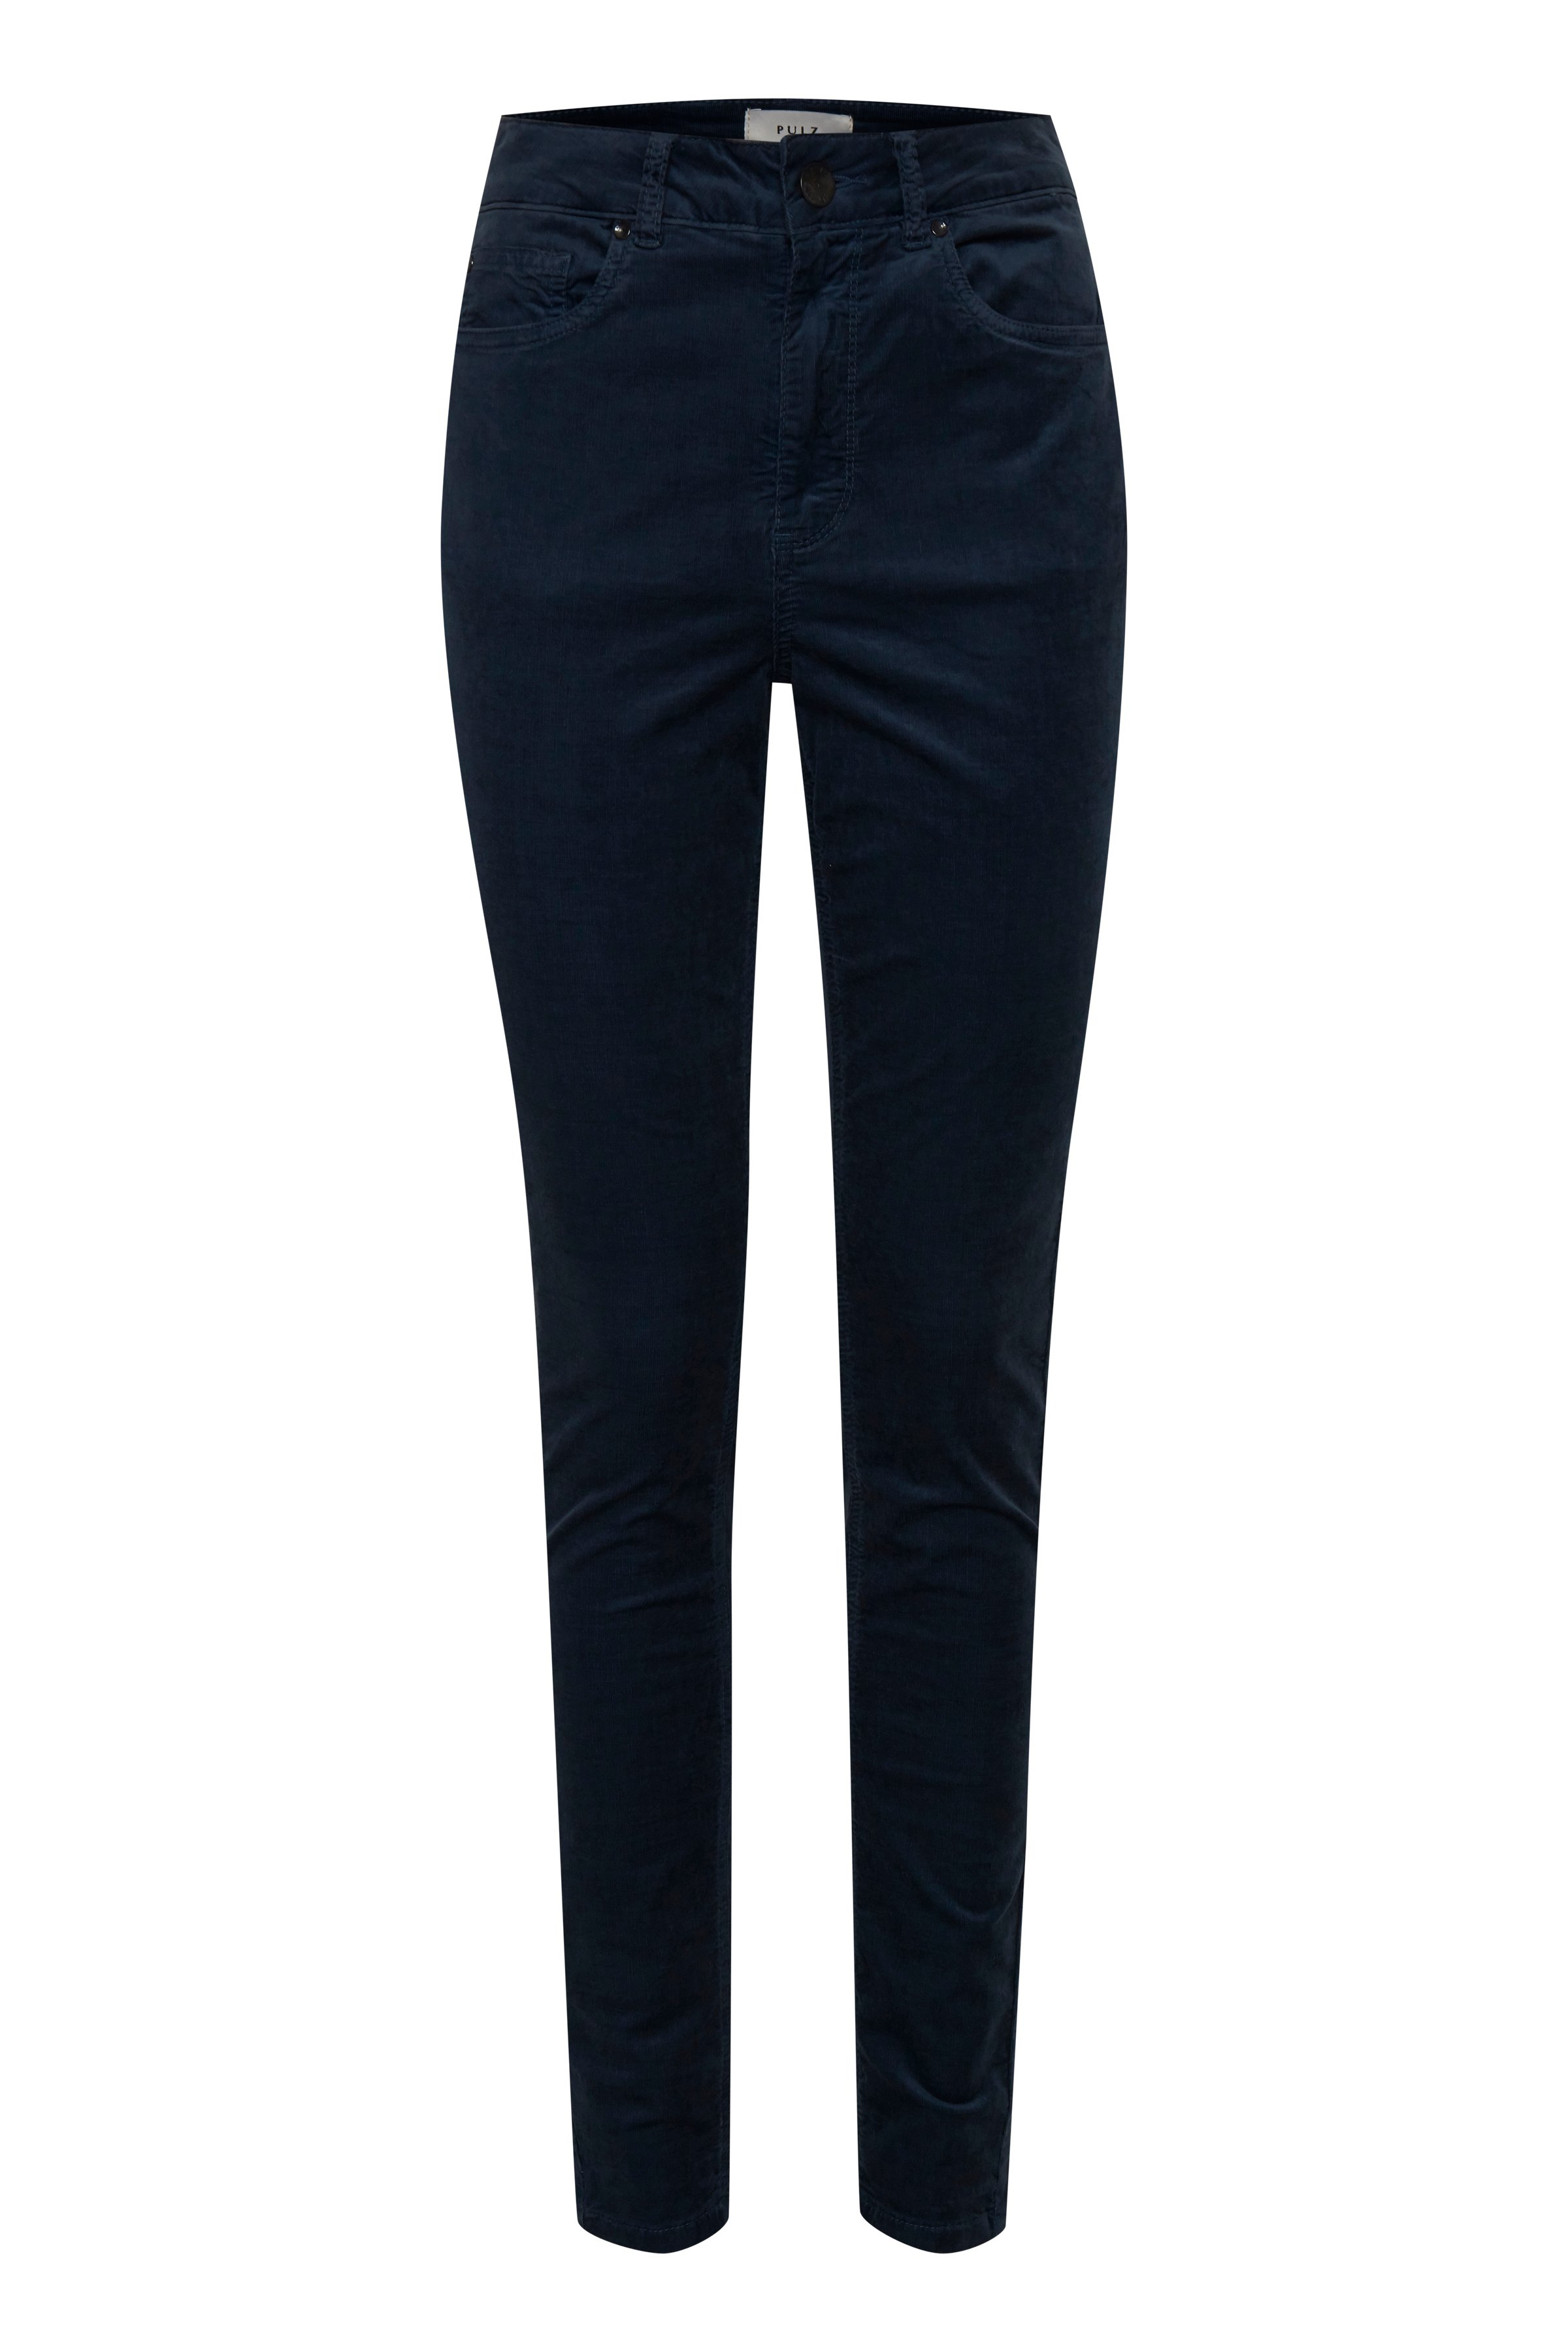 Pulz Jeans Dame Casual broek Midnight Navy